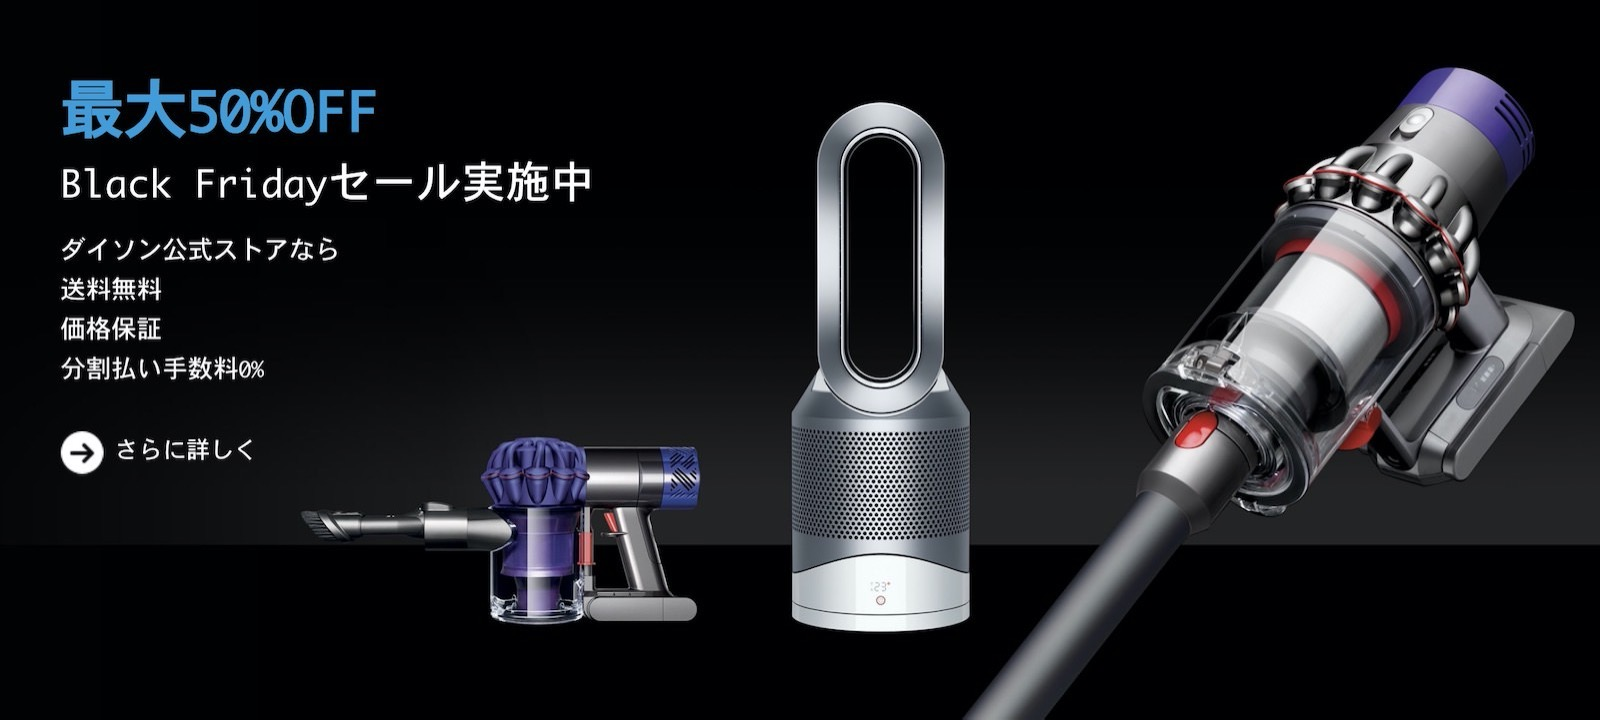 Dyson-Black-Friday-Sale.jpg